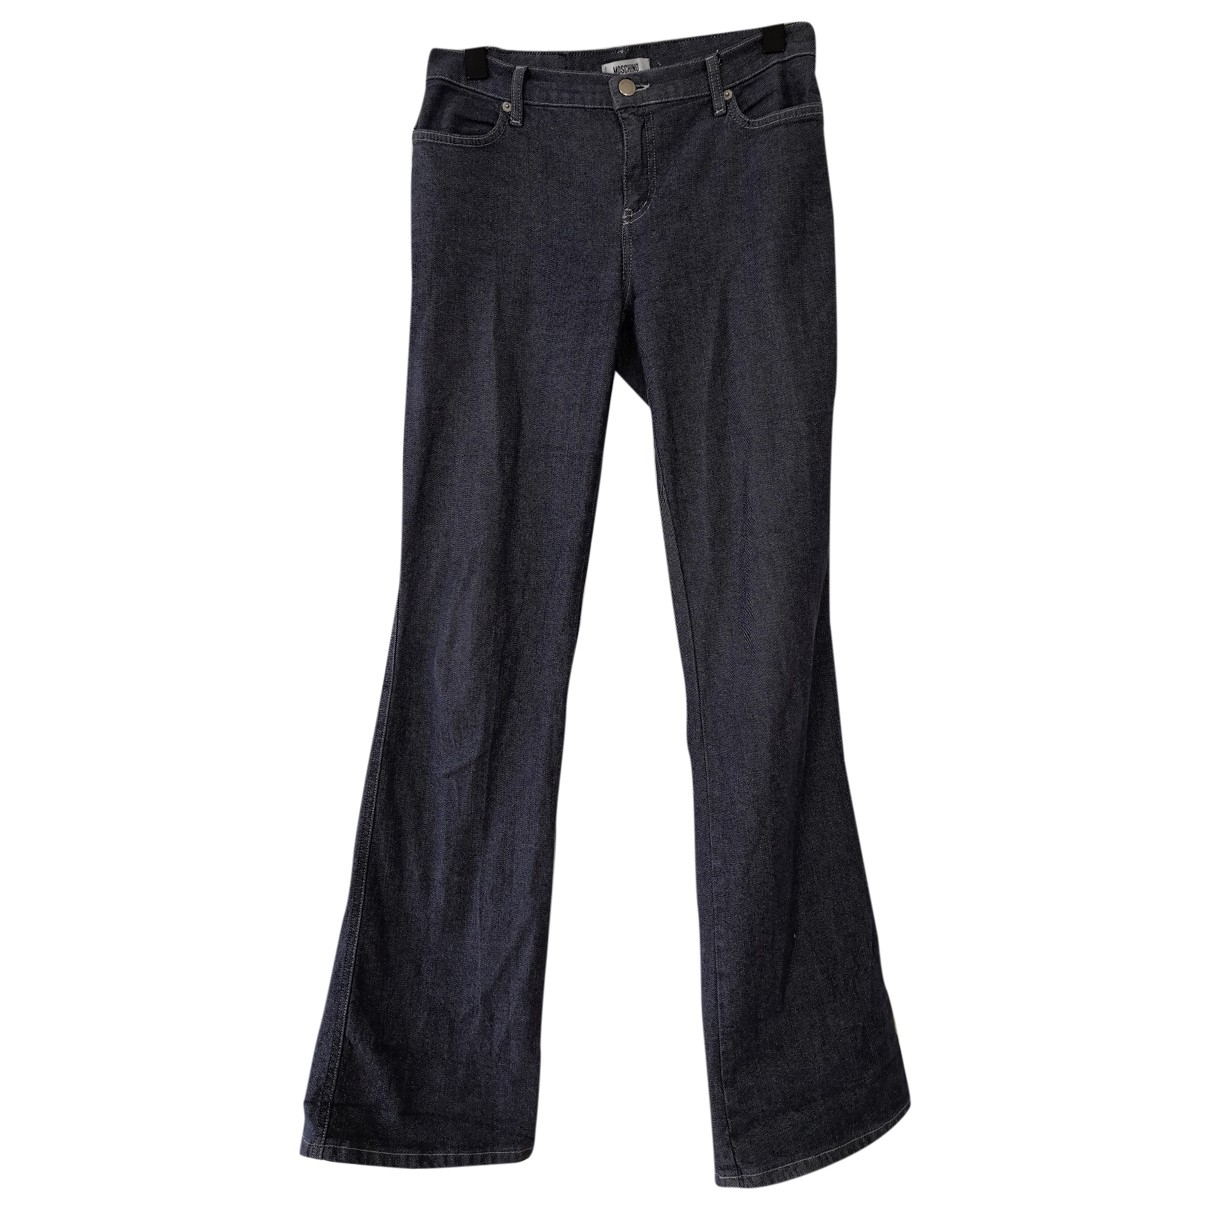 Moschino Cheap And Chic \N Blue Denim - Jeans Jeans for Women 30 US